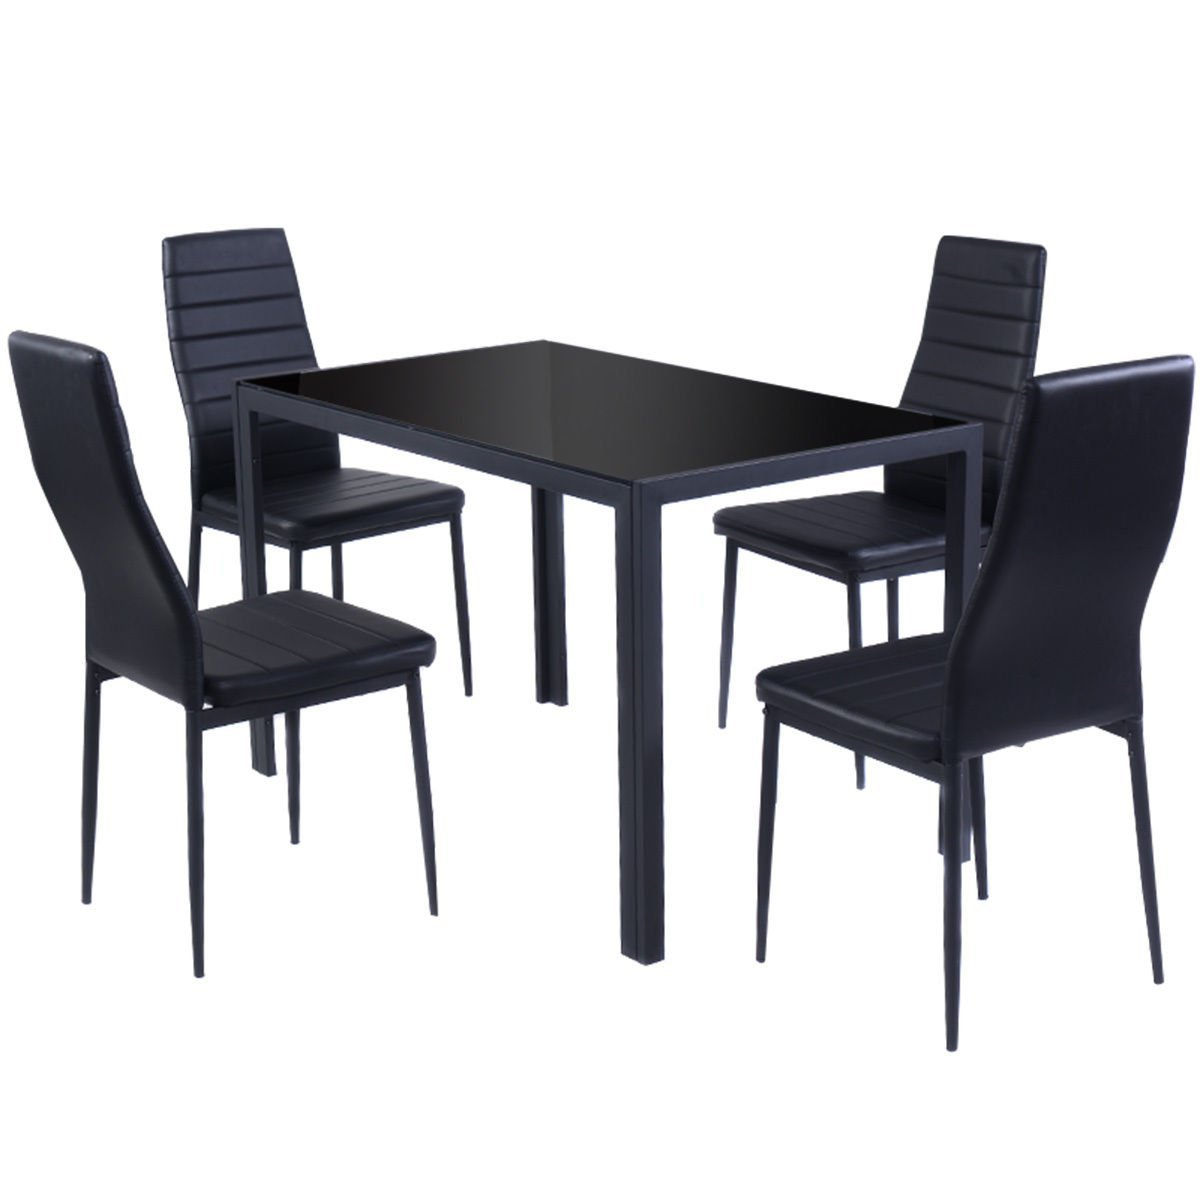 Details about 5 Piece Kitchen Dining Set Glass Metal Tabl & 4 Chairs  Breakfast Furniture